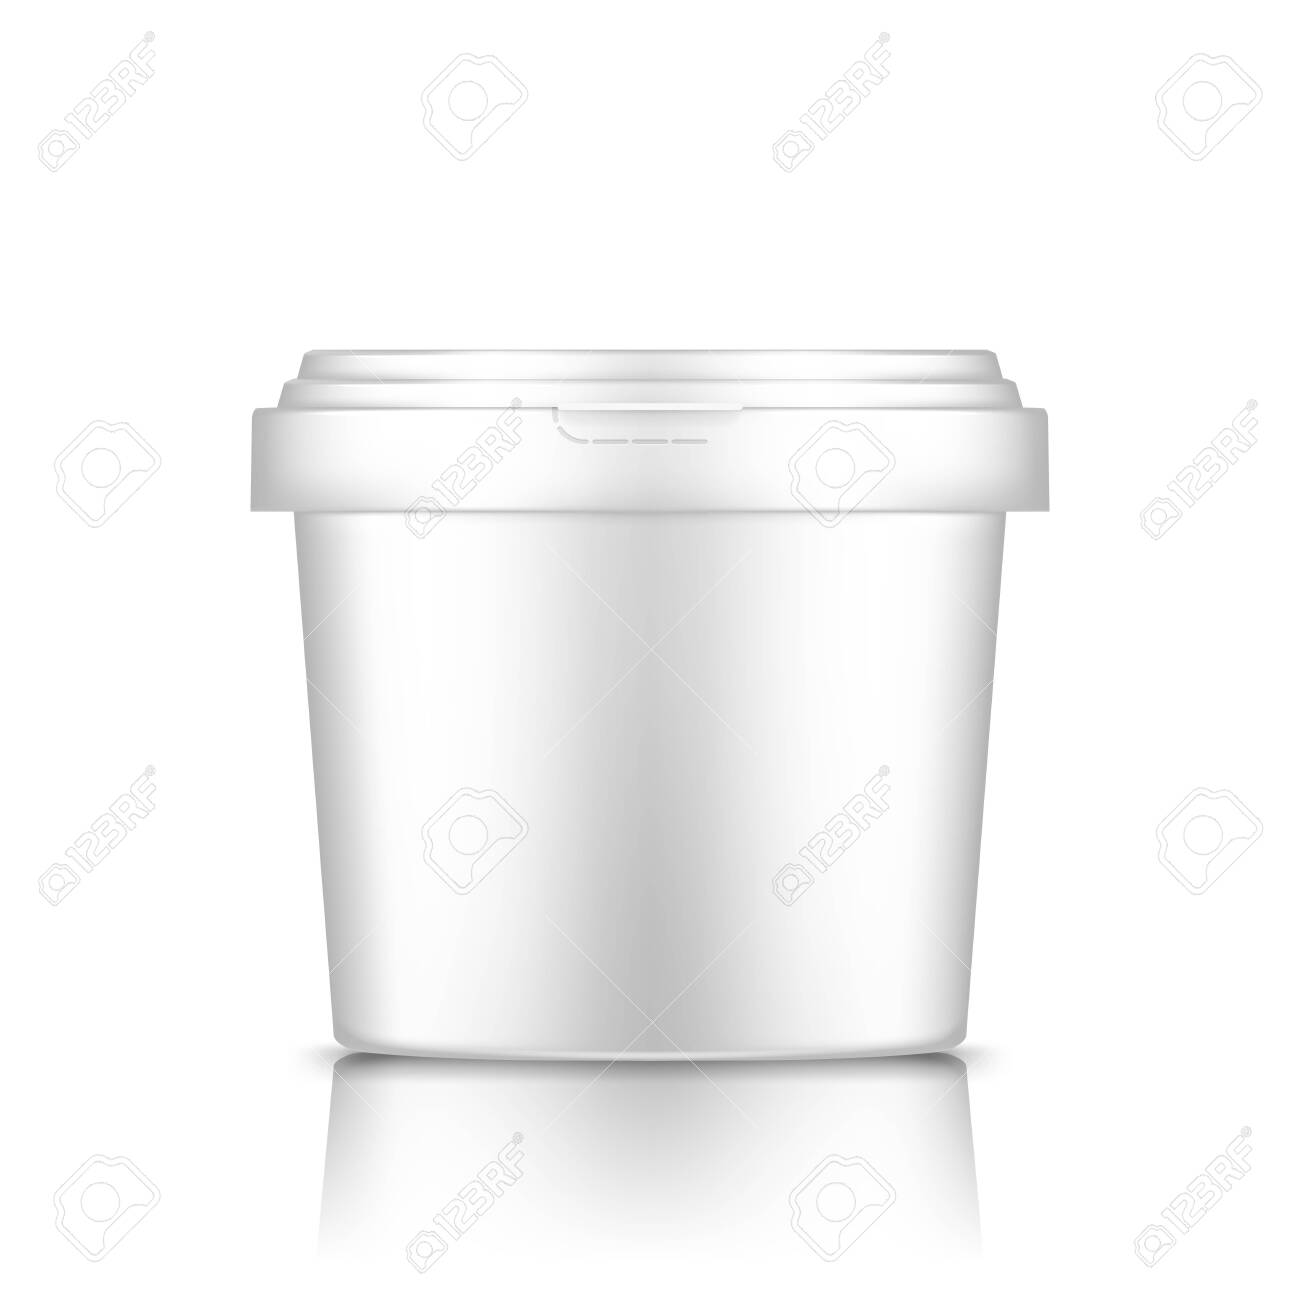 White bucket with cap mockup isolated from background: ice cream, yoghurt, mayonnaise, paint, or putty container. Plastic package design. Blank food or decor product template. 3d vector illustration - 151004401